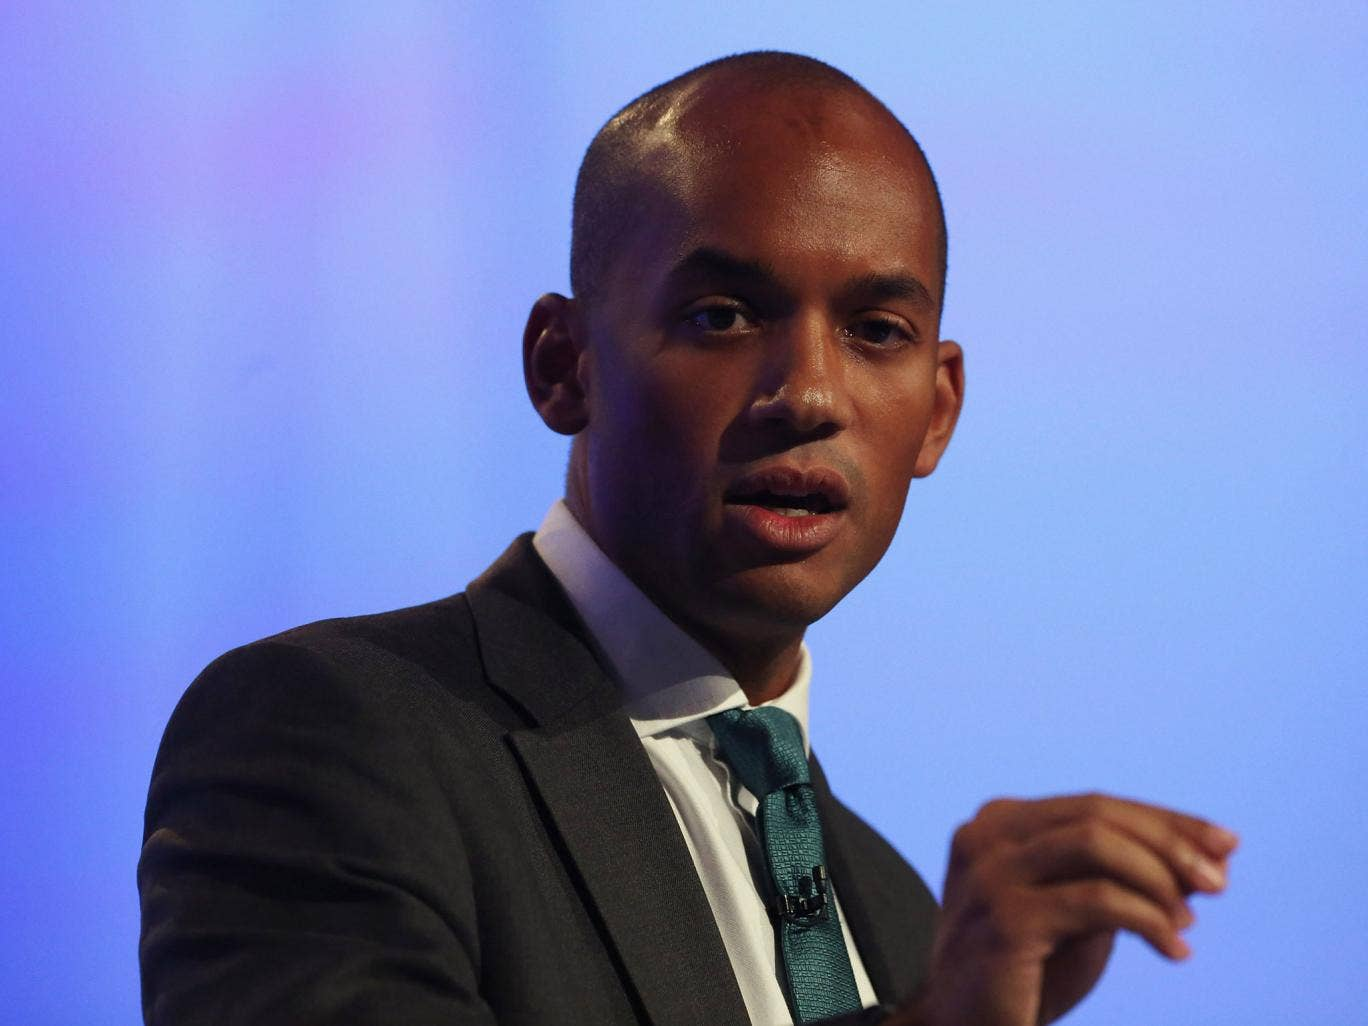 Chuka Umunna has claimed that black British actors head to the US to avoid 'lazy stereotypes'